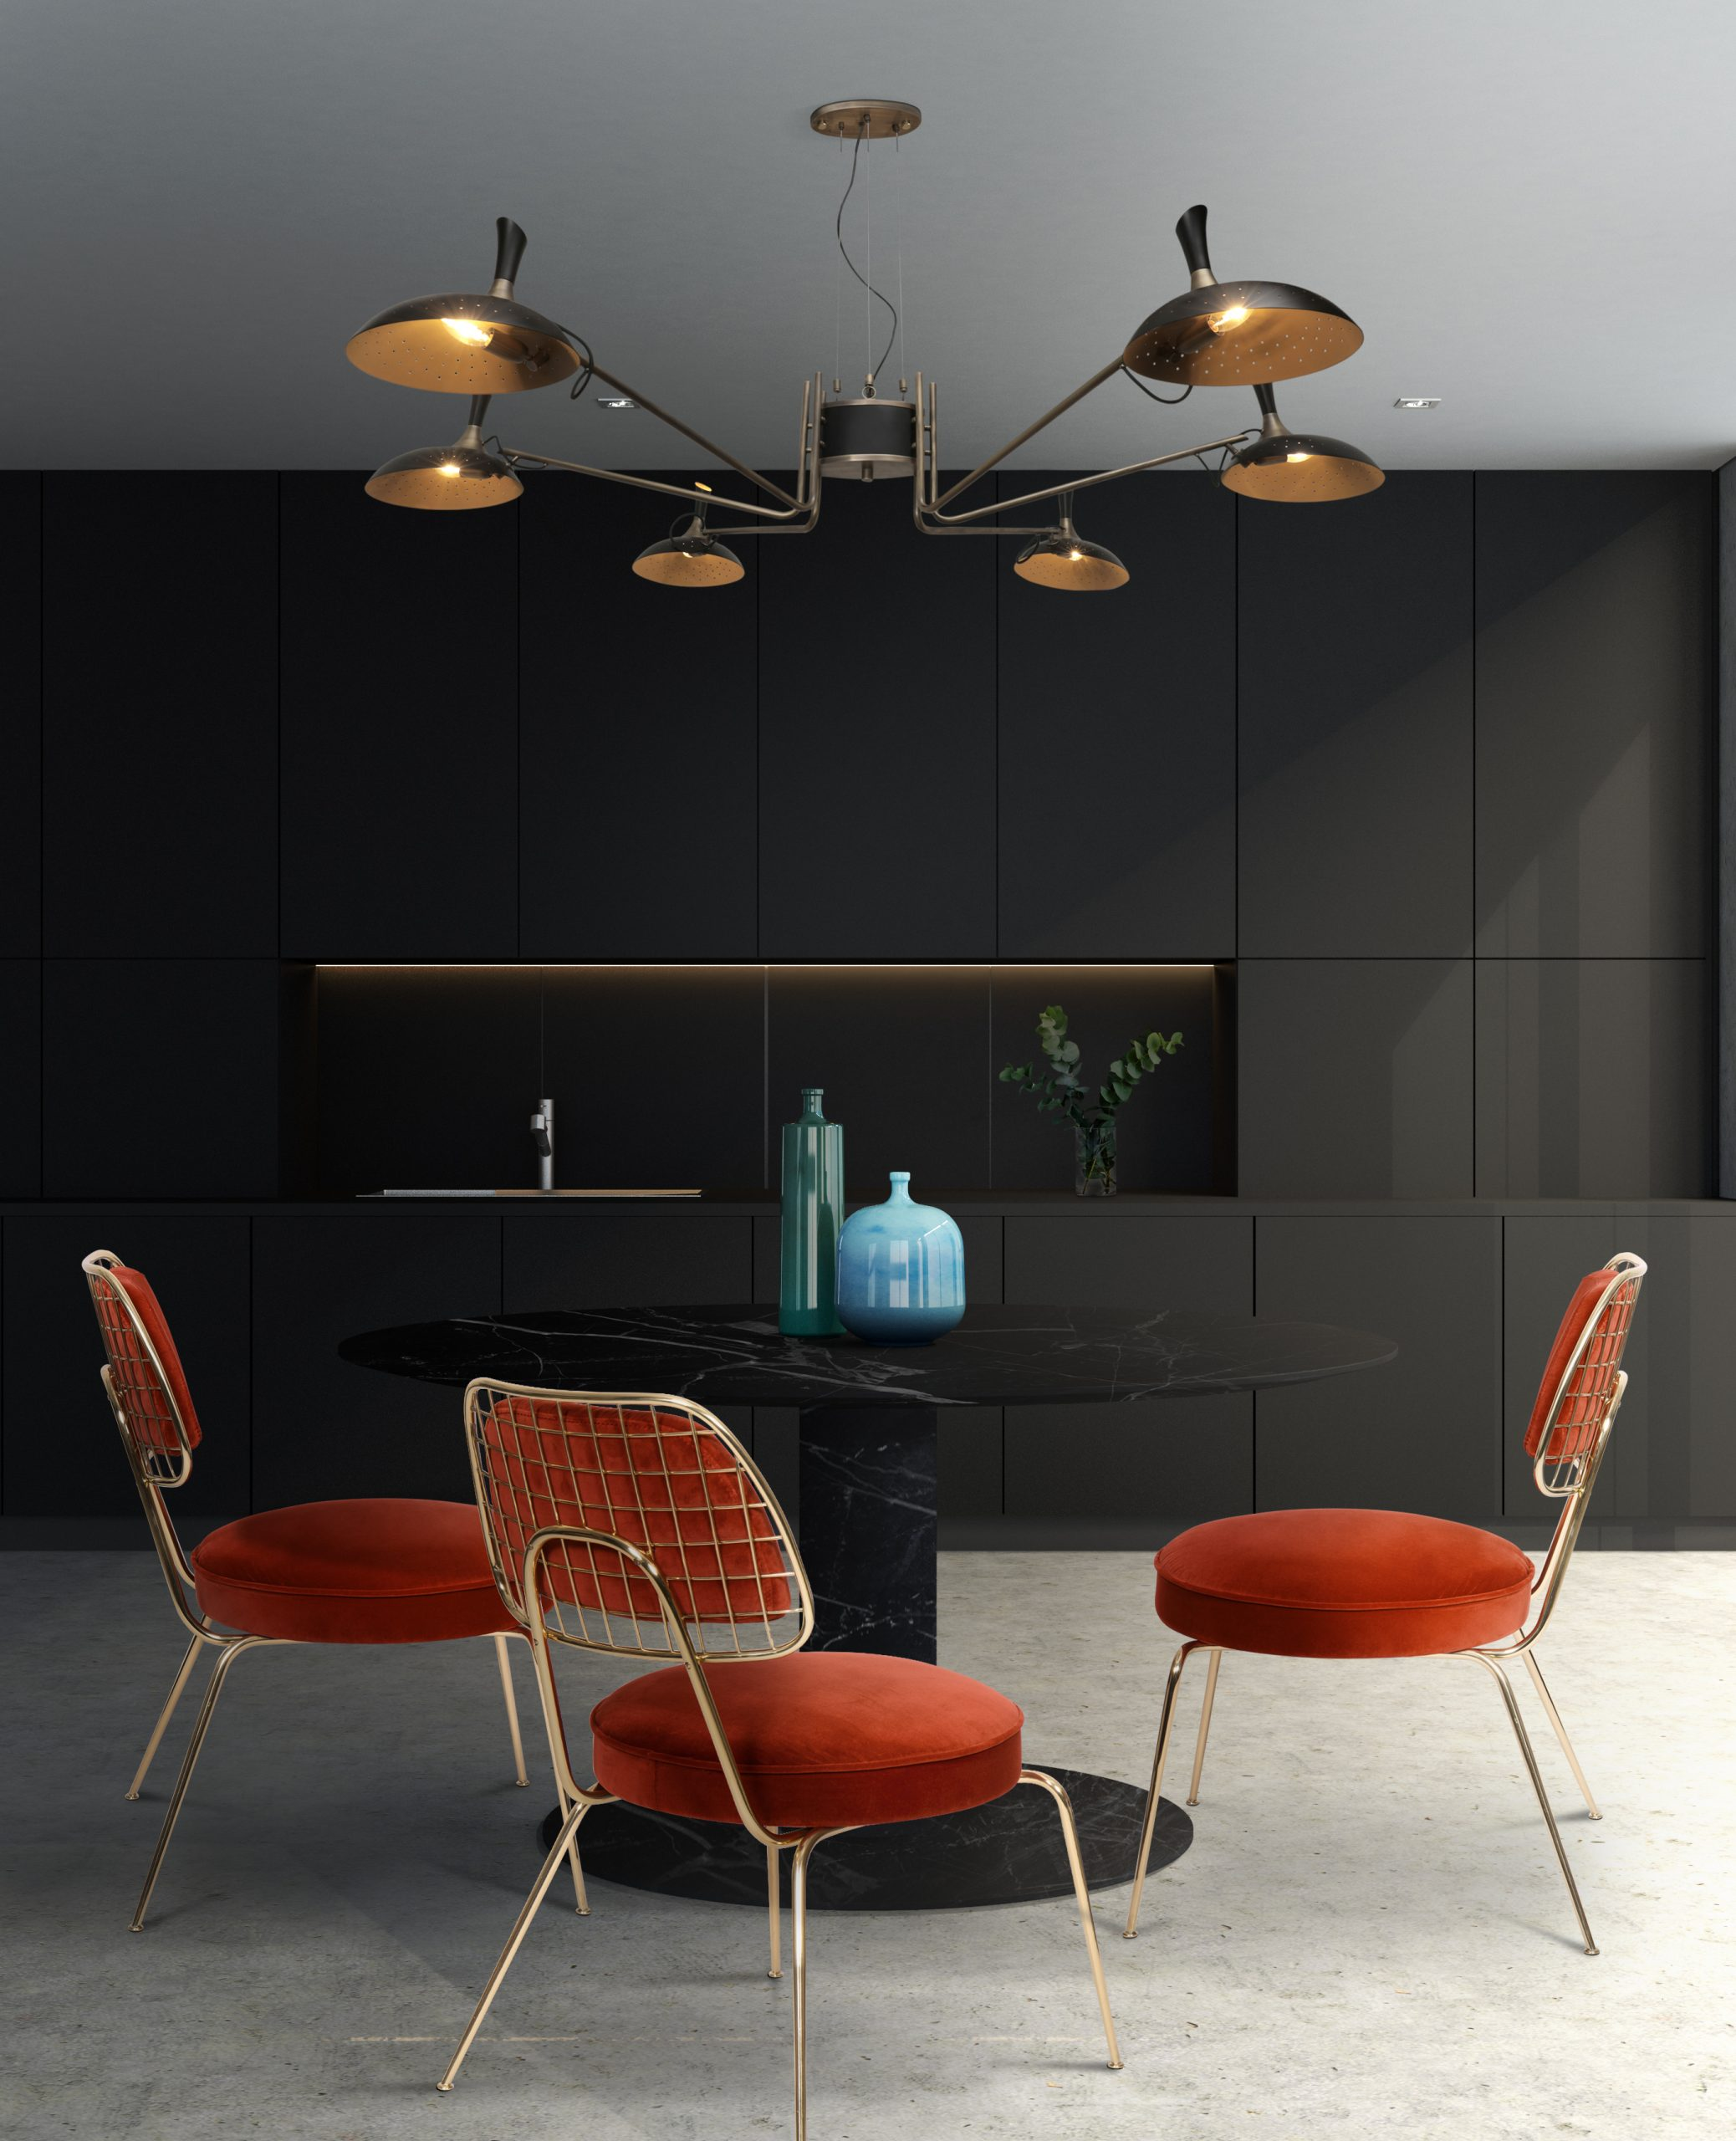 7 Dining Rooms That Make The Most Out of Limited Space Due to the Lighting Fixture! dining rooms 7 Dining Rooms That Make The Most Out of Limited Space Due to the Lighting Fixture! 5 3 scaled